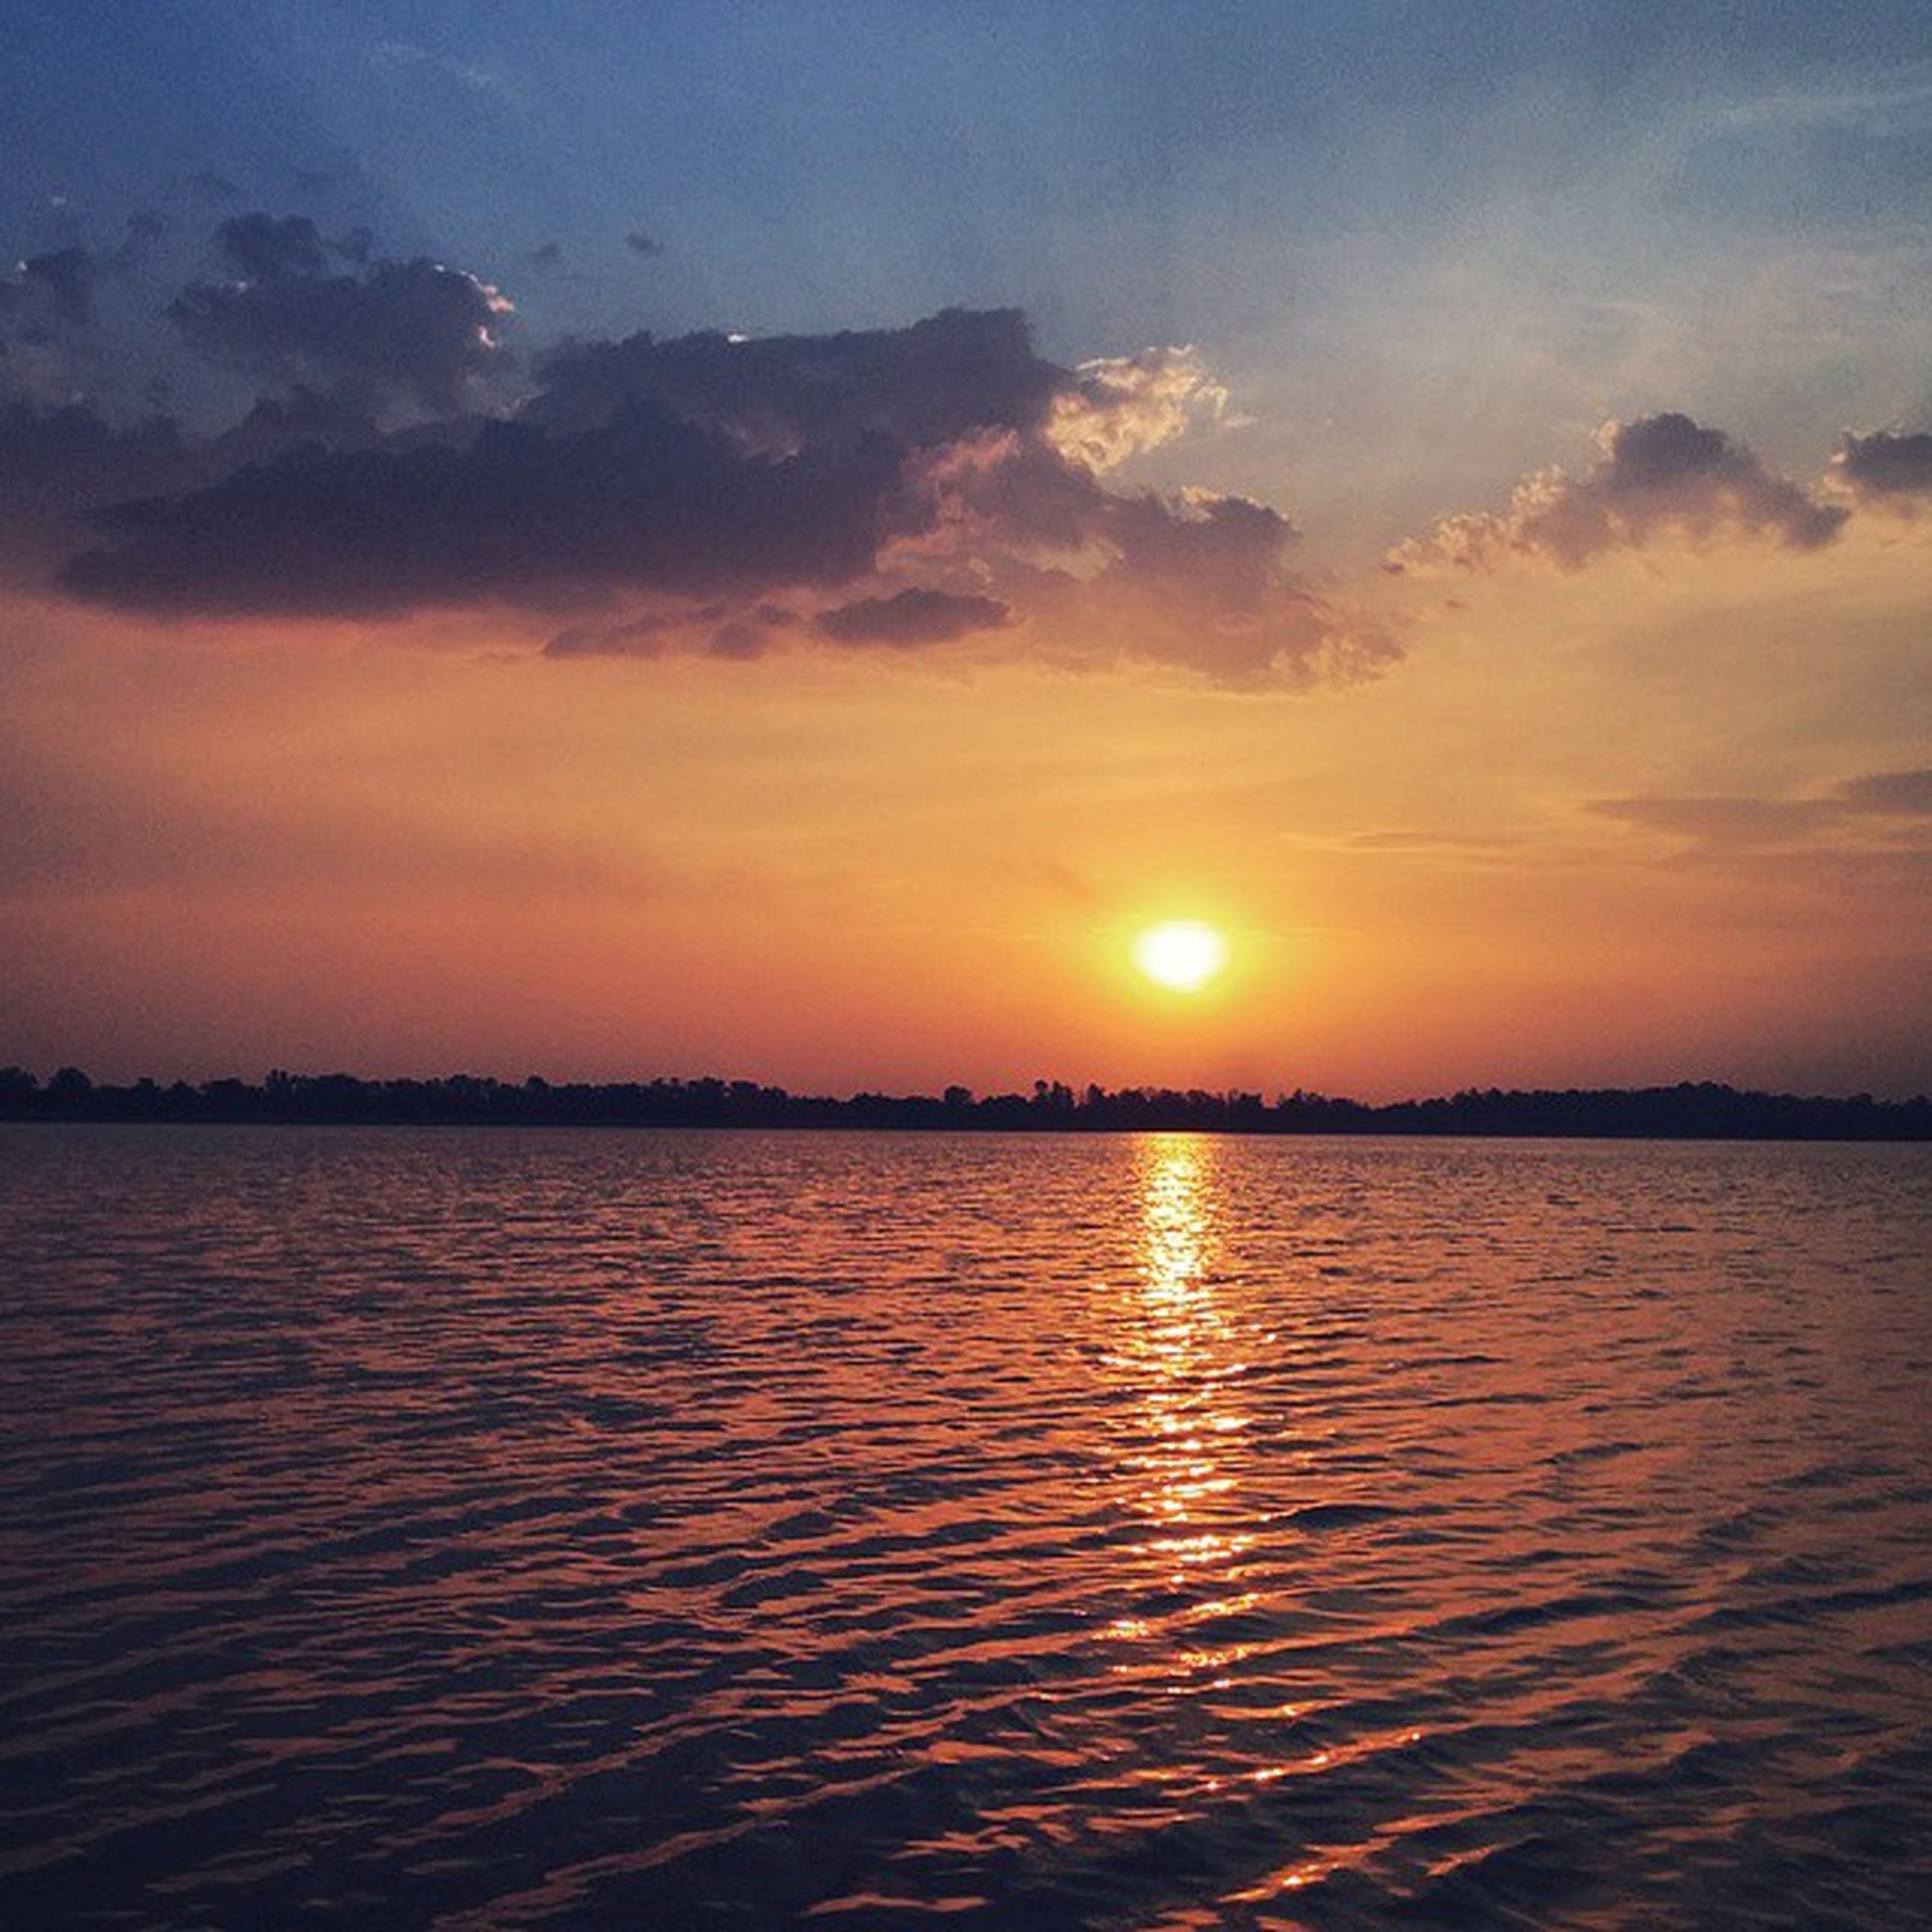 sunset, water, scenics, tranquil scene, sun, beauty in nature, tranquility, sky, orange color, reflection, waterfront, idyllic, nature, lake, cloud - sky, silhouette, rippled, sunlight, cloud, river